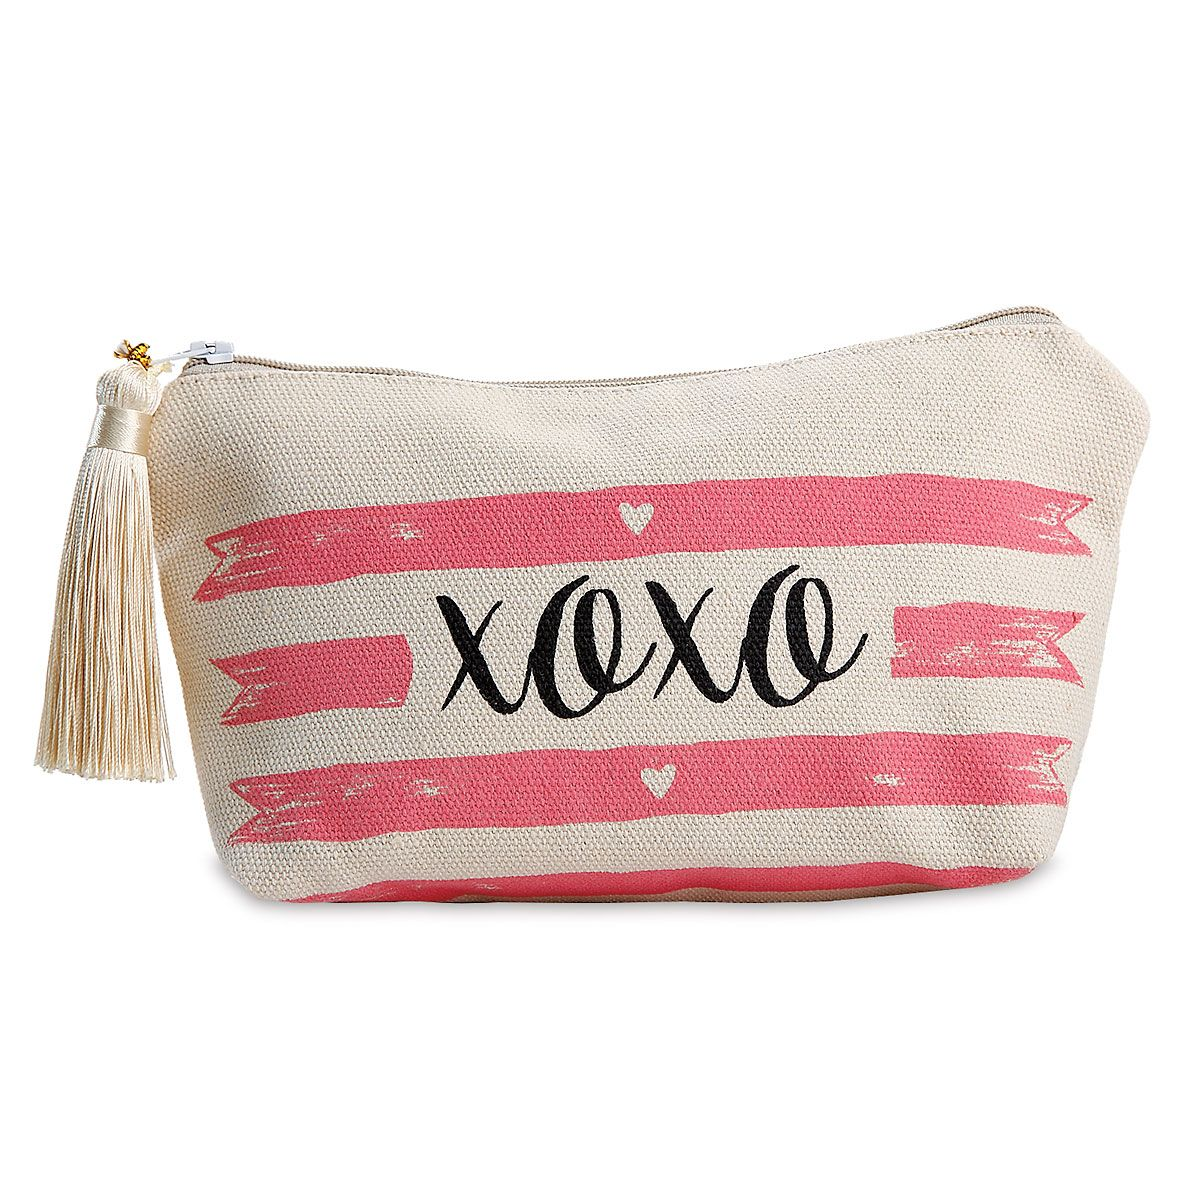 XOXO Canvas Cosmetic Bag - BOGO